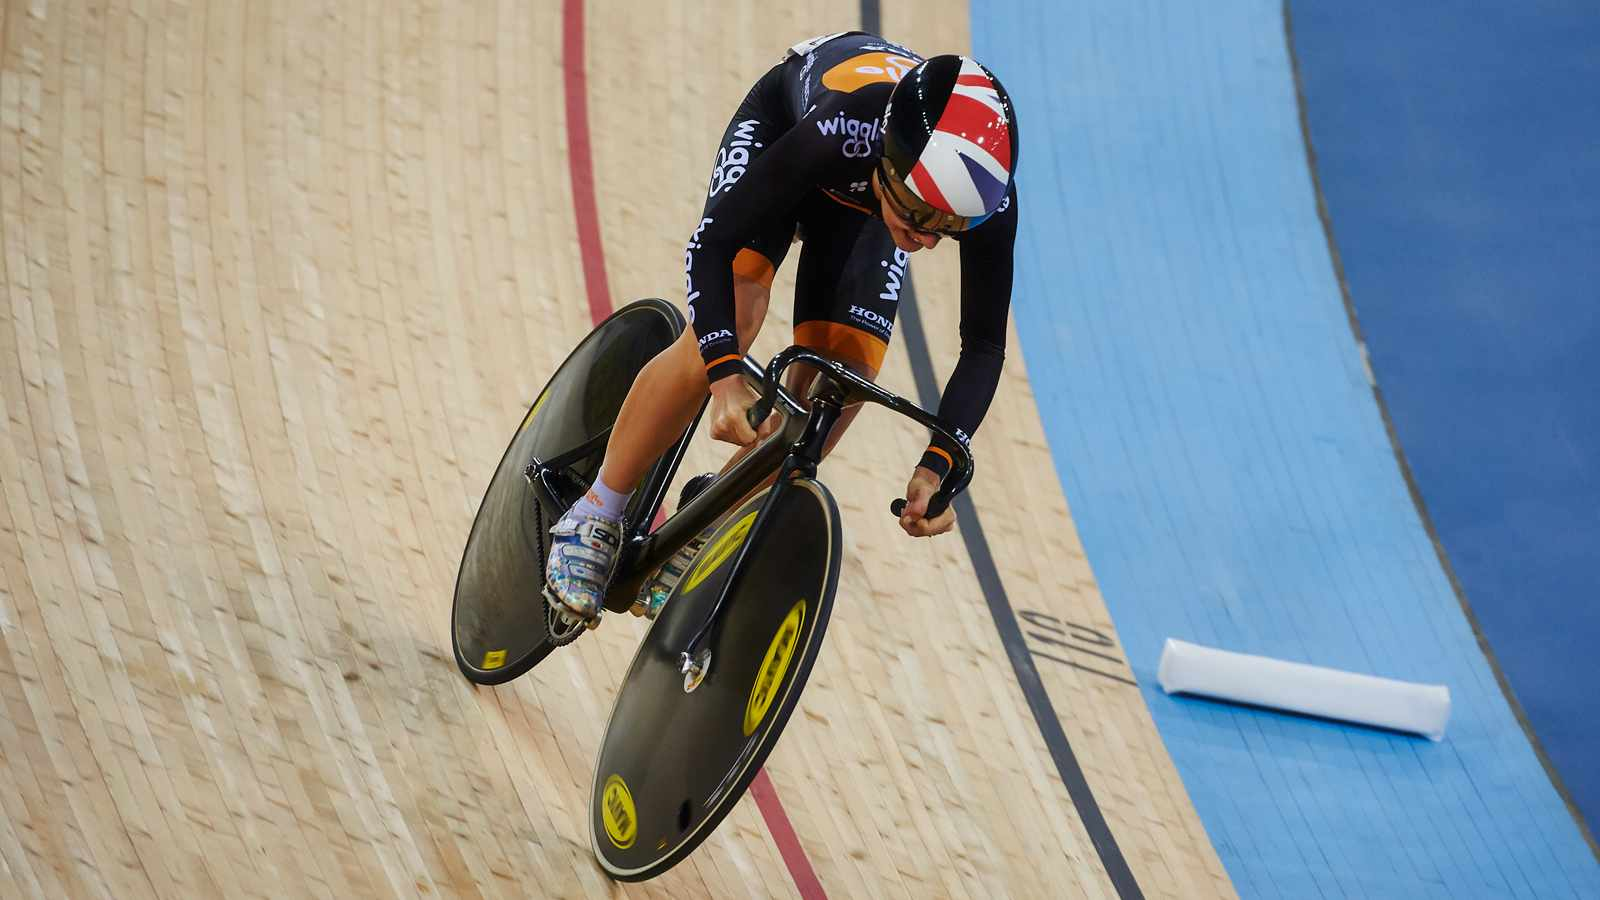 Track cycling returns this weekend with the Revolution Series opener